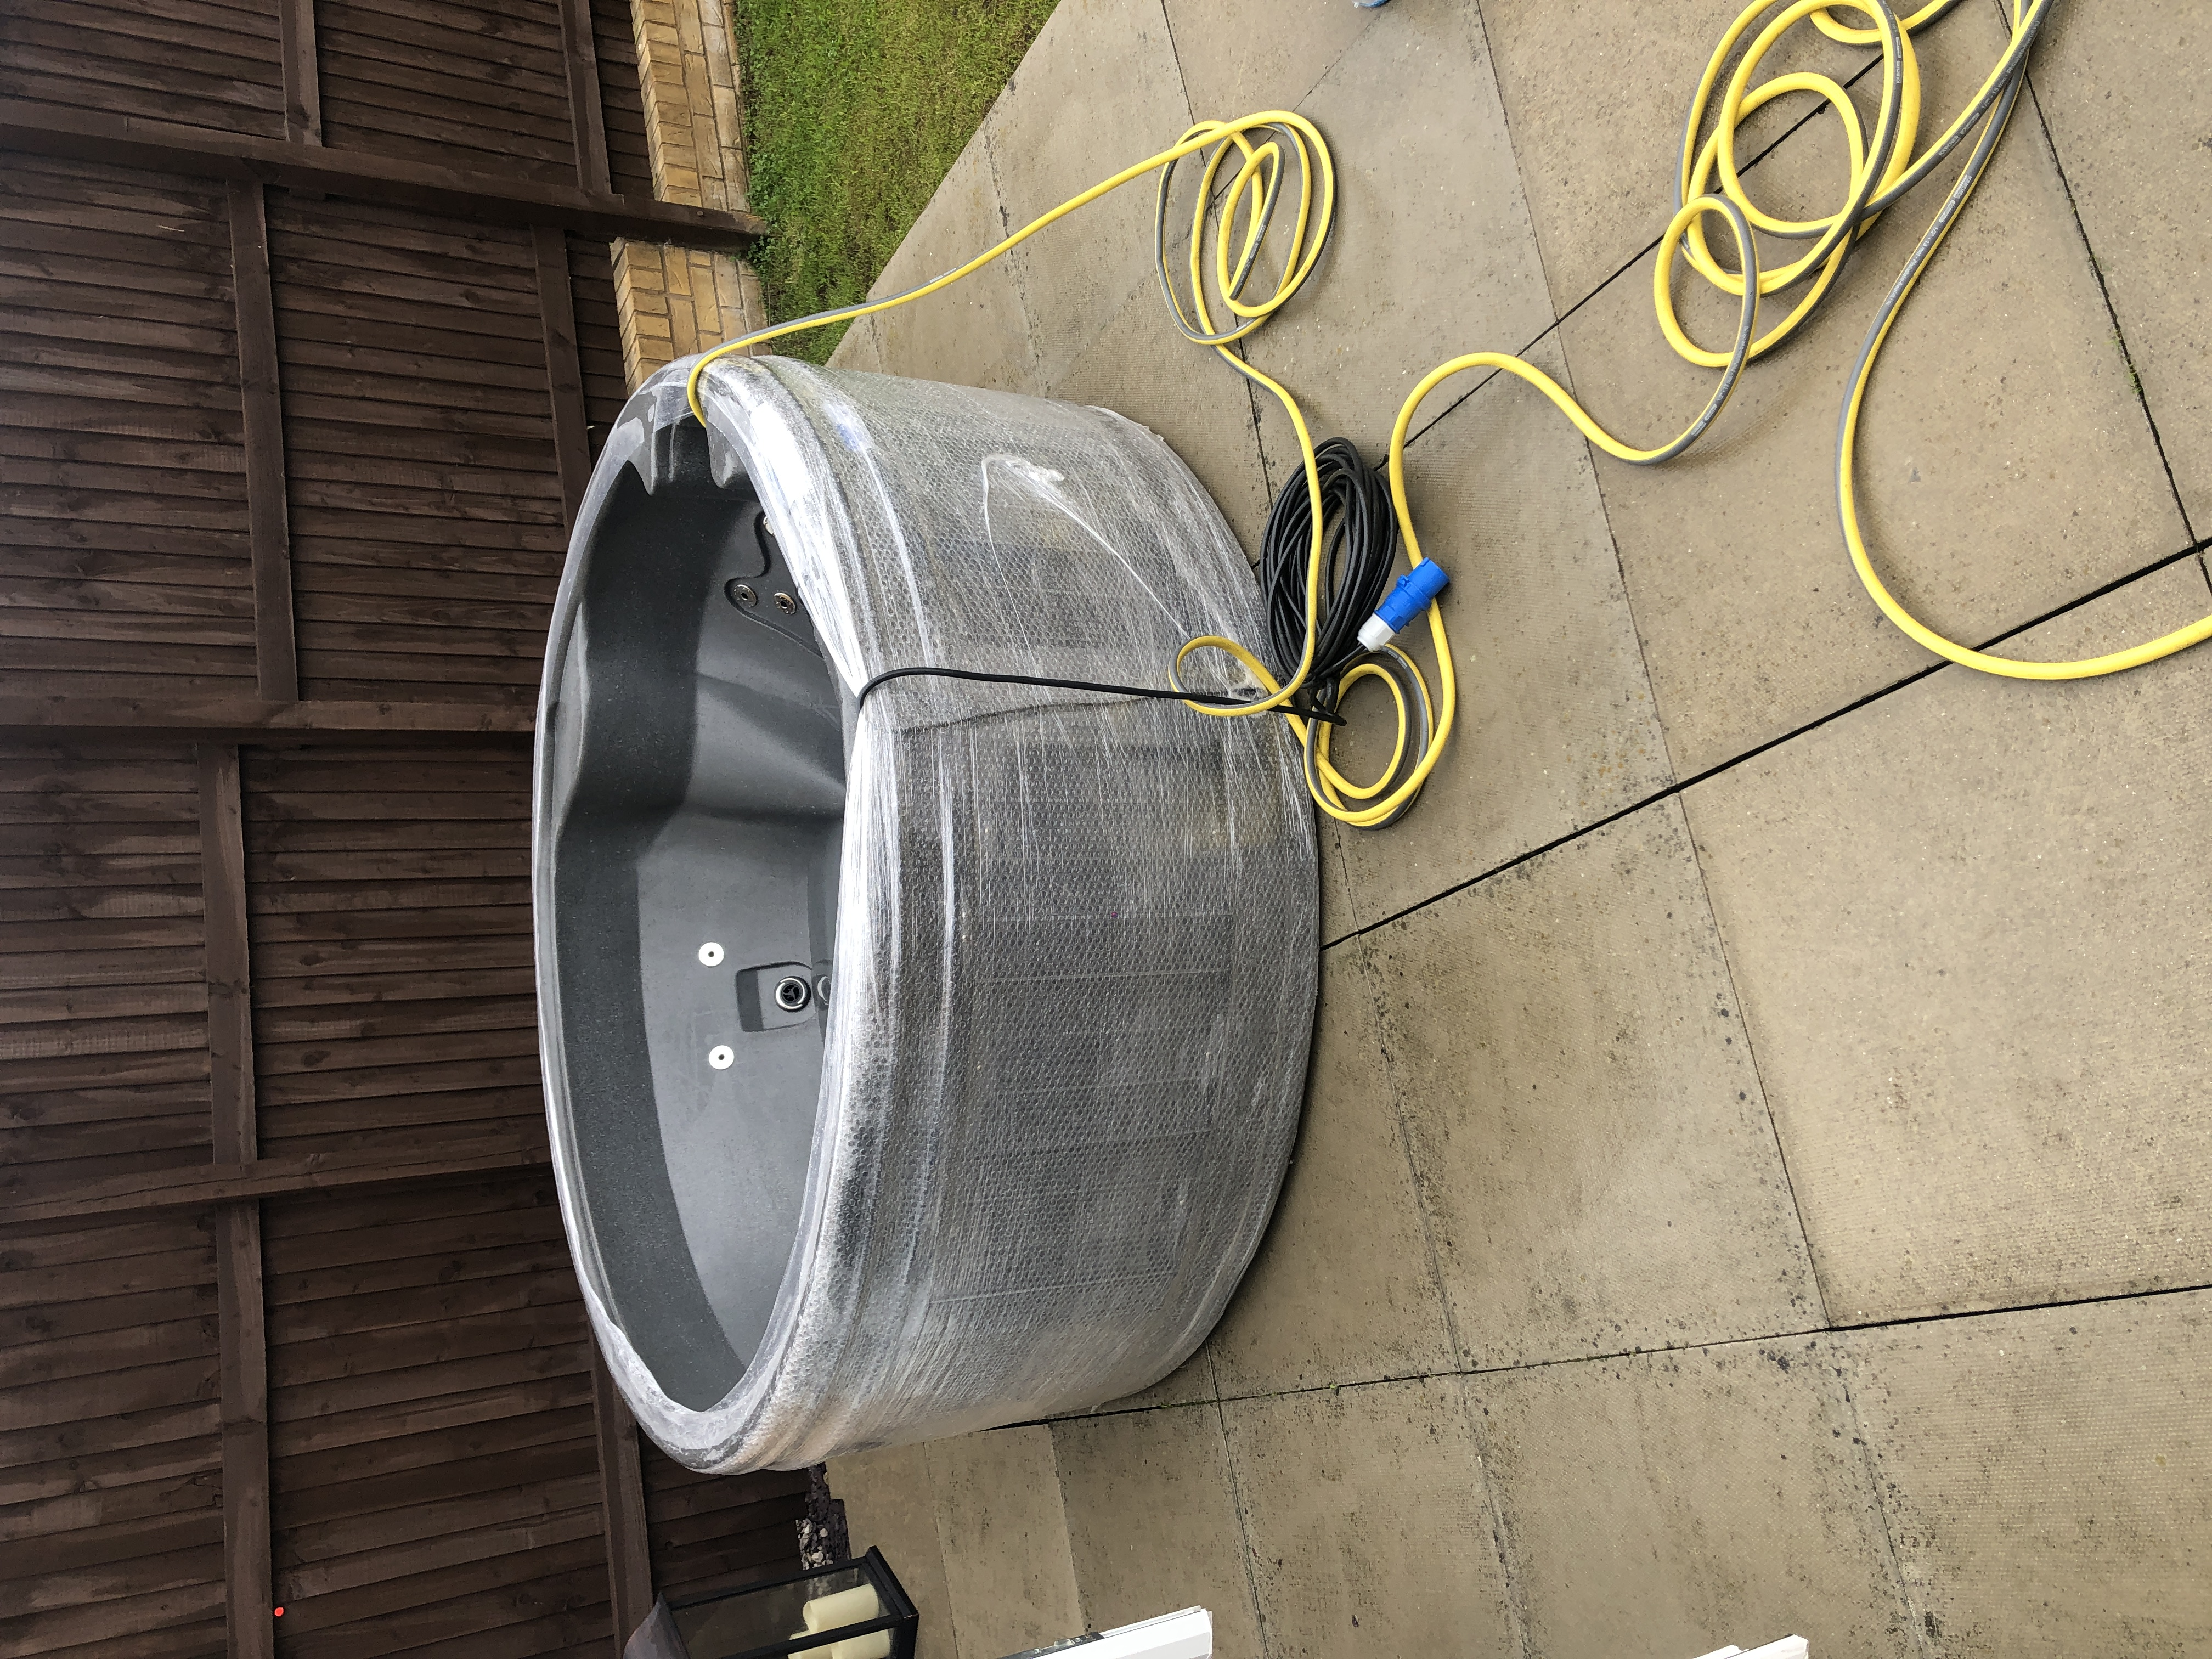 New Rotospa Orbis Eazy Hot Tub Hire Yorkshire hot tub rotherham Sheffield Barnsley Doncaster Wakefie